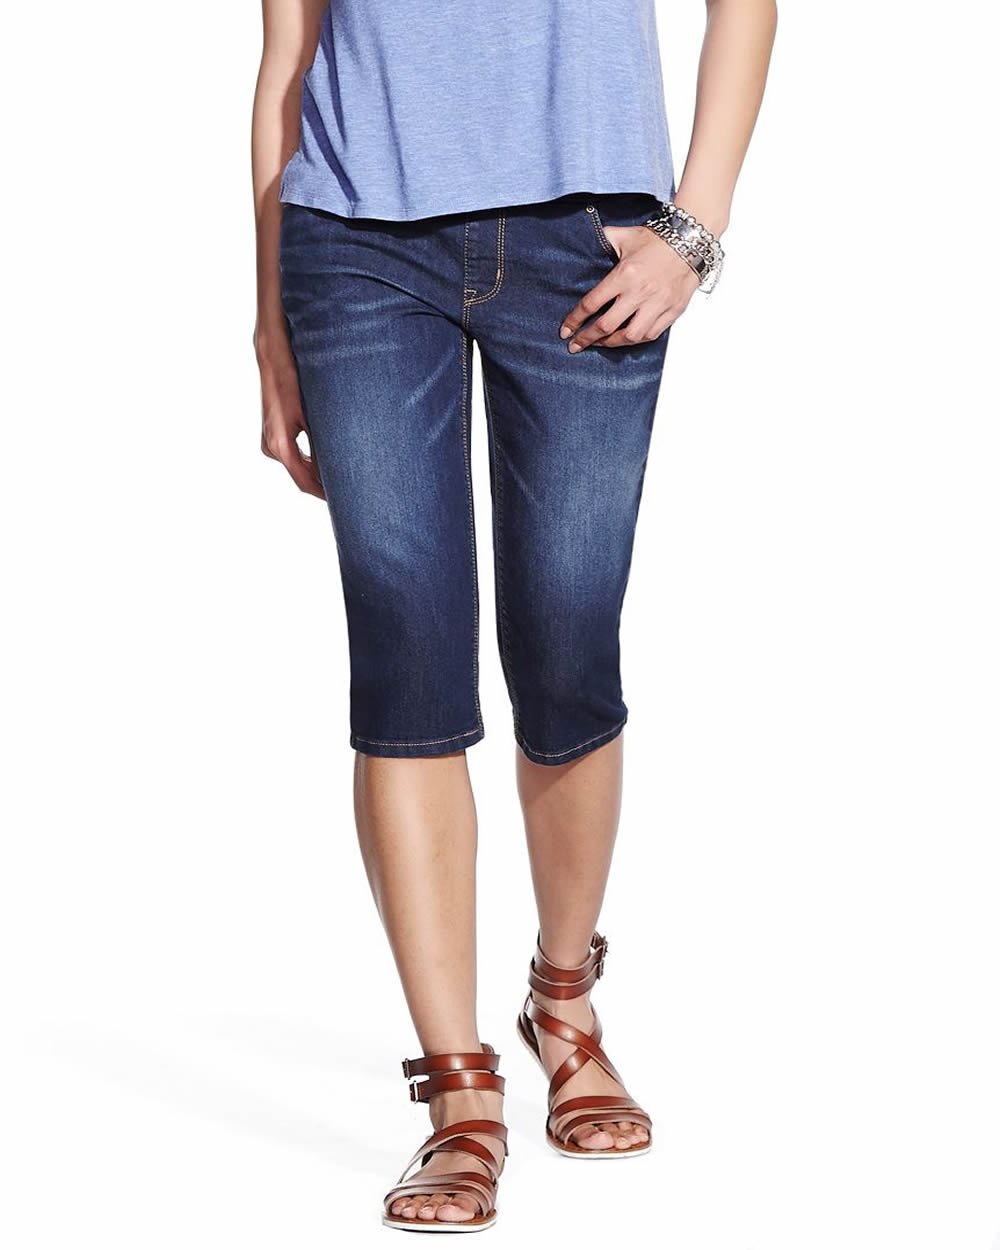 Free shipping on petite pants, shorts & skirts for women at truexfilepv.cf Shop for petite-size jeans, trousers, ankle pants, skirts & more. Enjoy free shipping & returns.